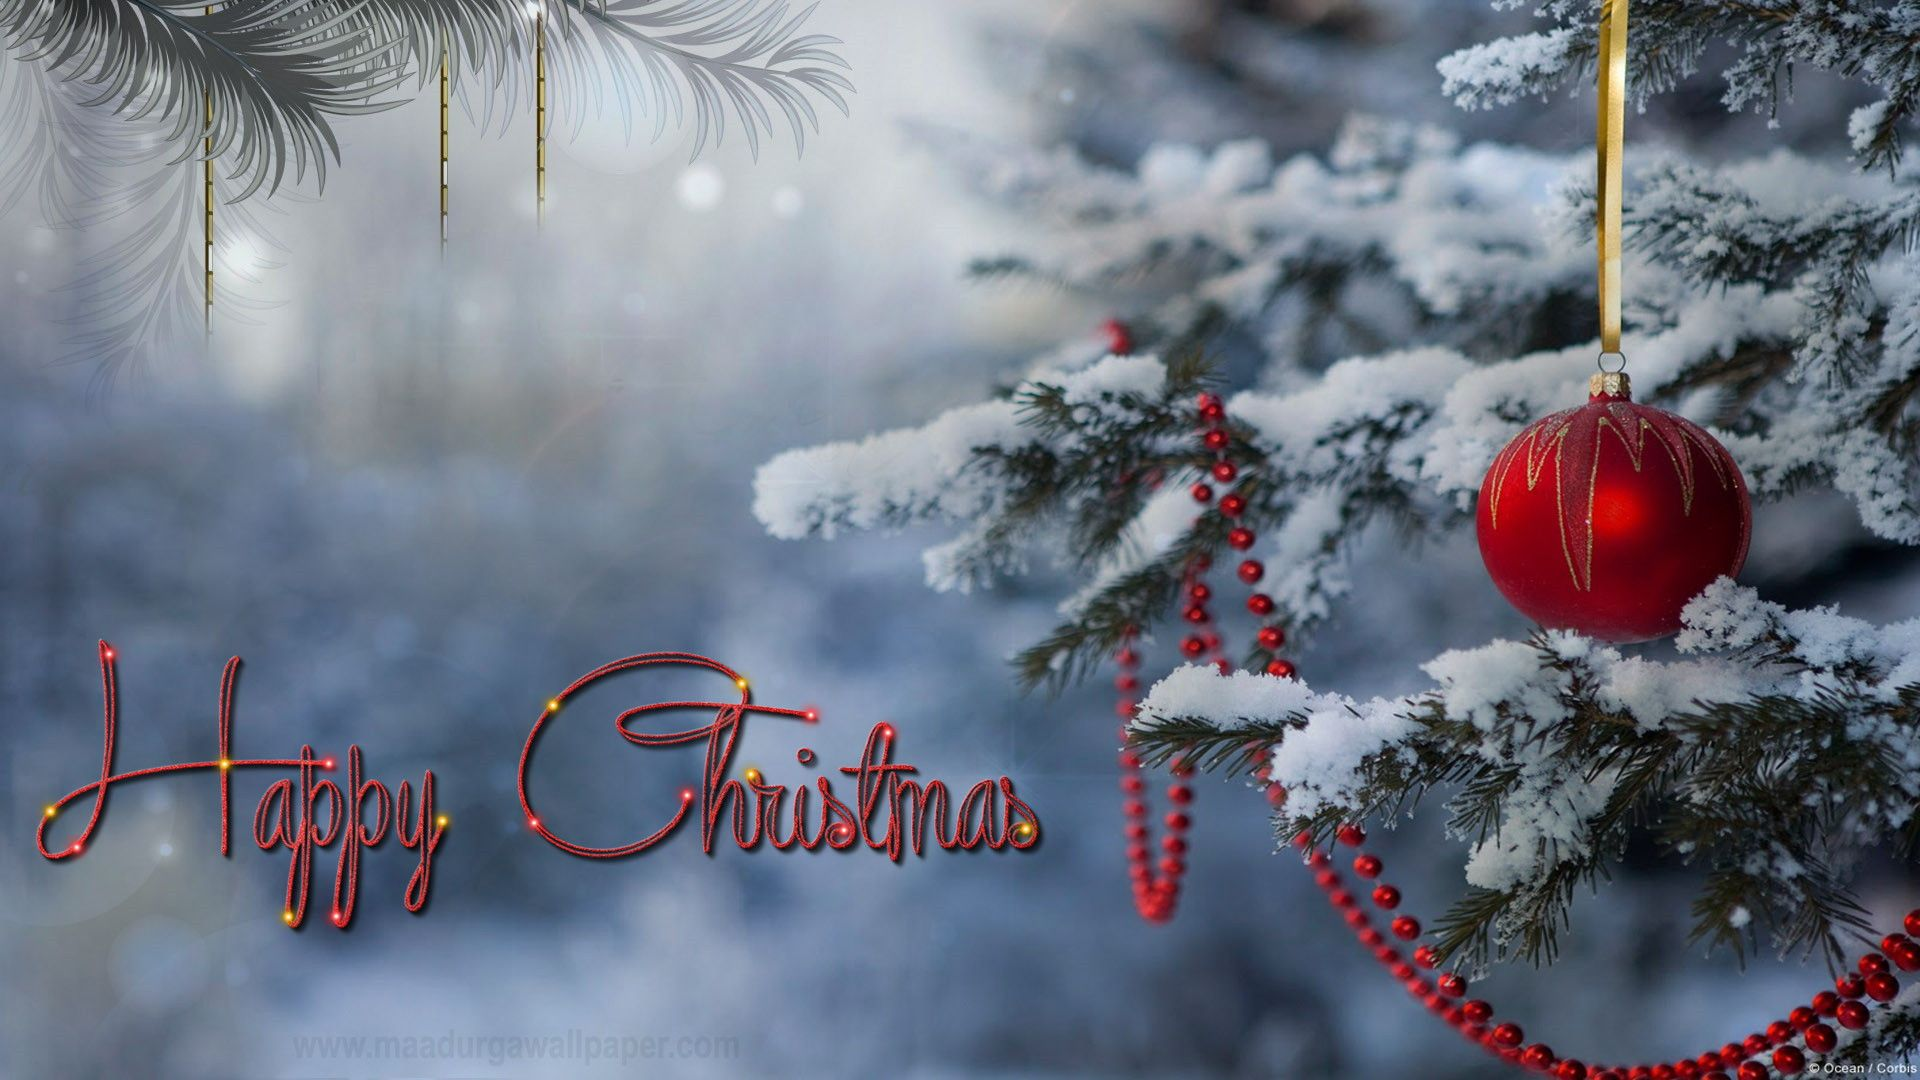 Christmas Best Wishes Wallpaper, Beautiful Picture & Hd